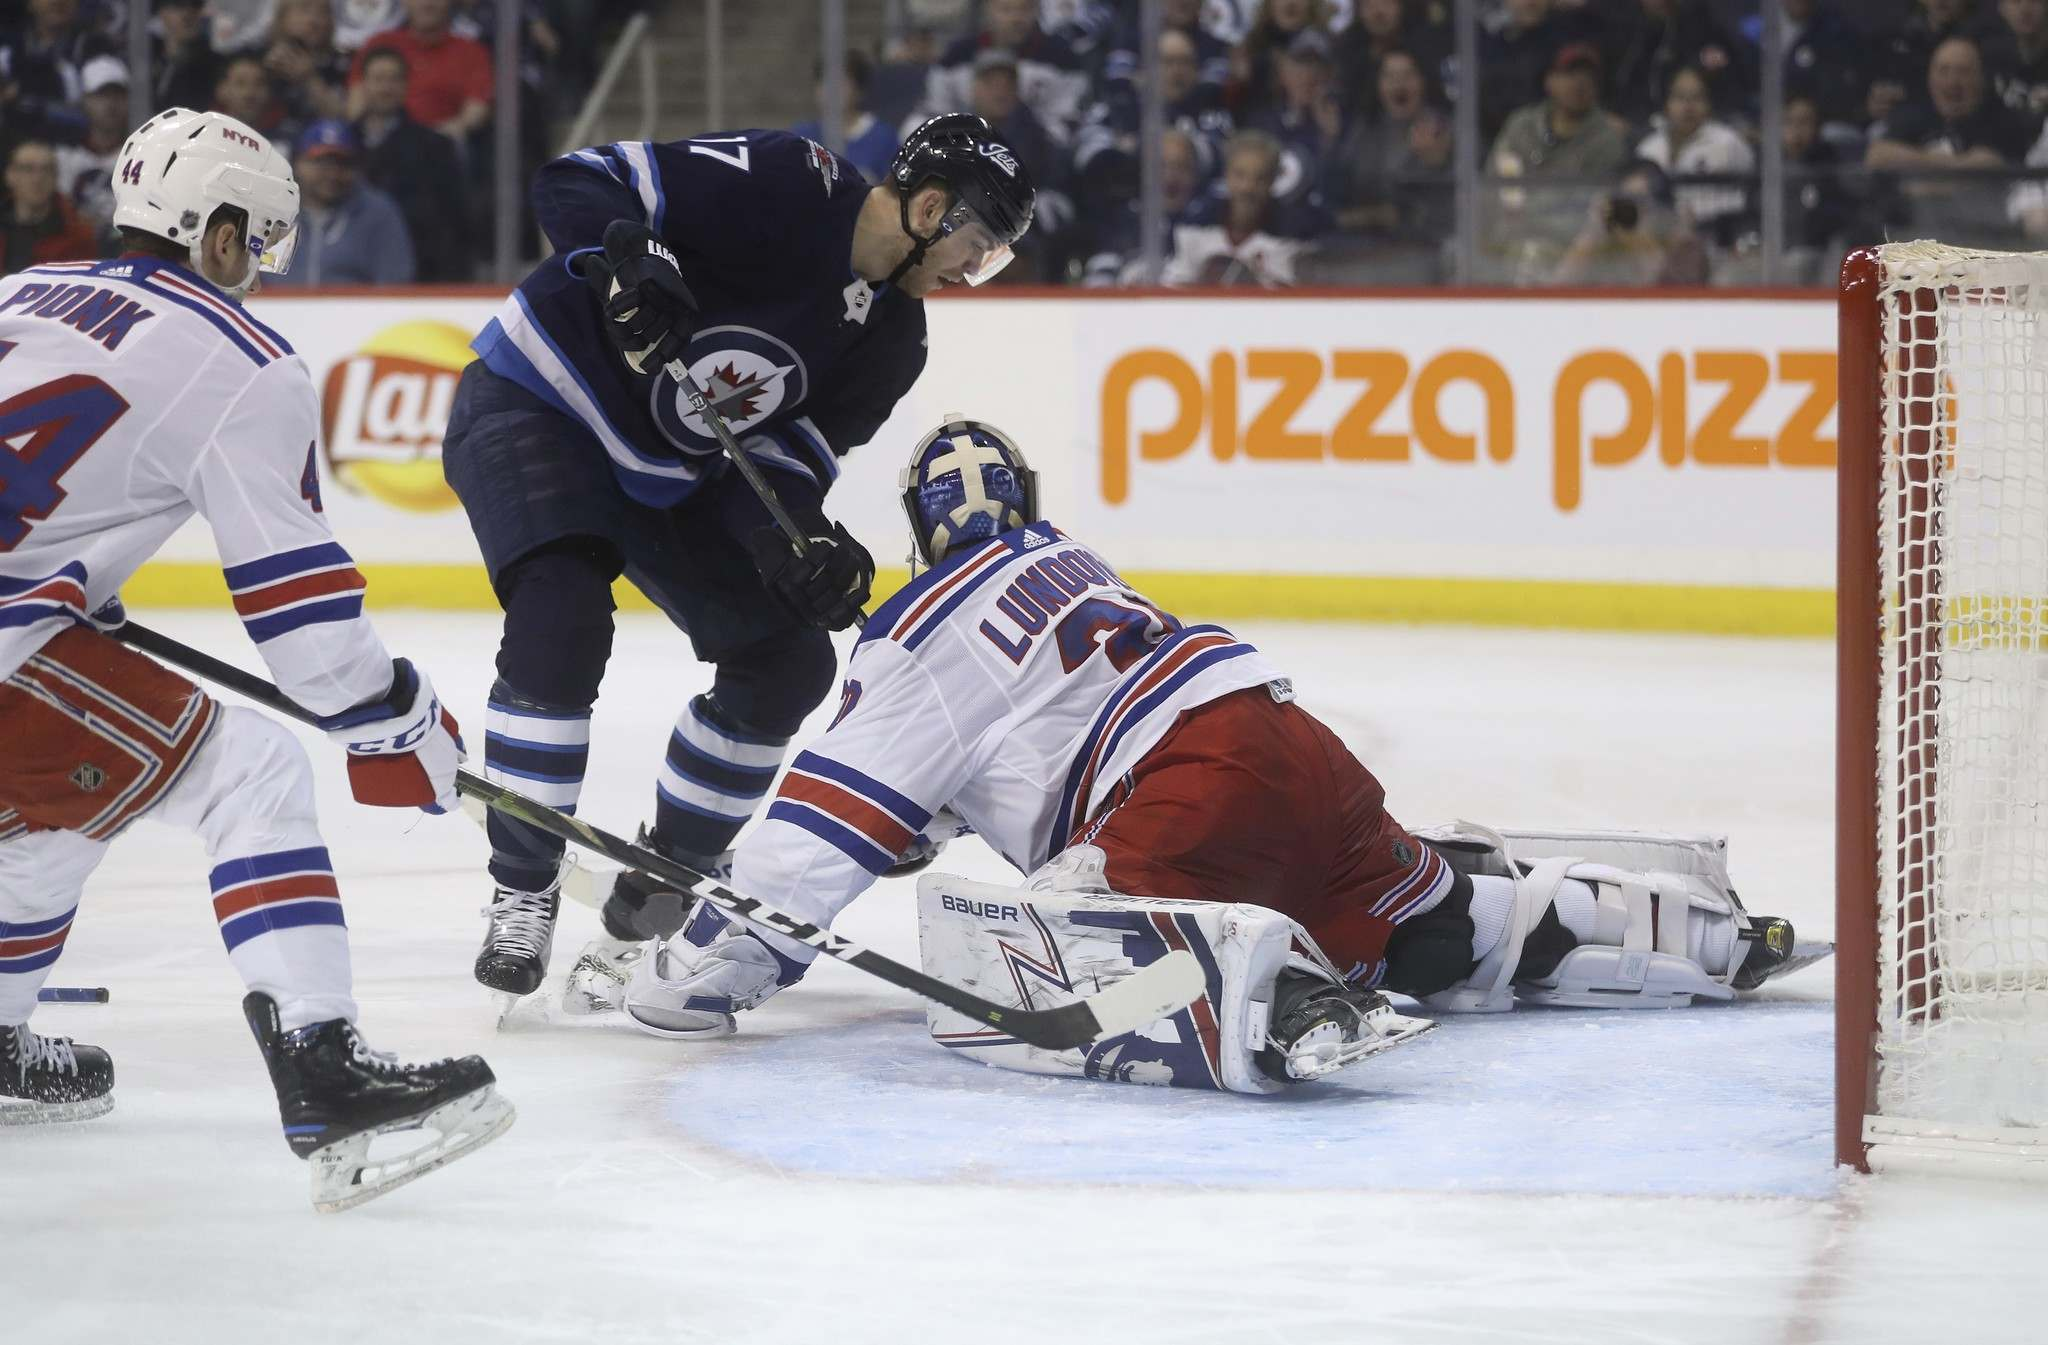 Trevor Hagan / The Canadian Press files</p><p>Jets centre Adam Lowry&rsquo;s scoring attempt is stopped by Rangers goalie Henrik Lundqvist on Tuesday.</p>